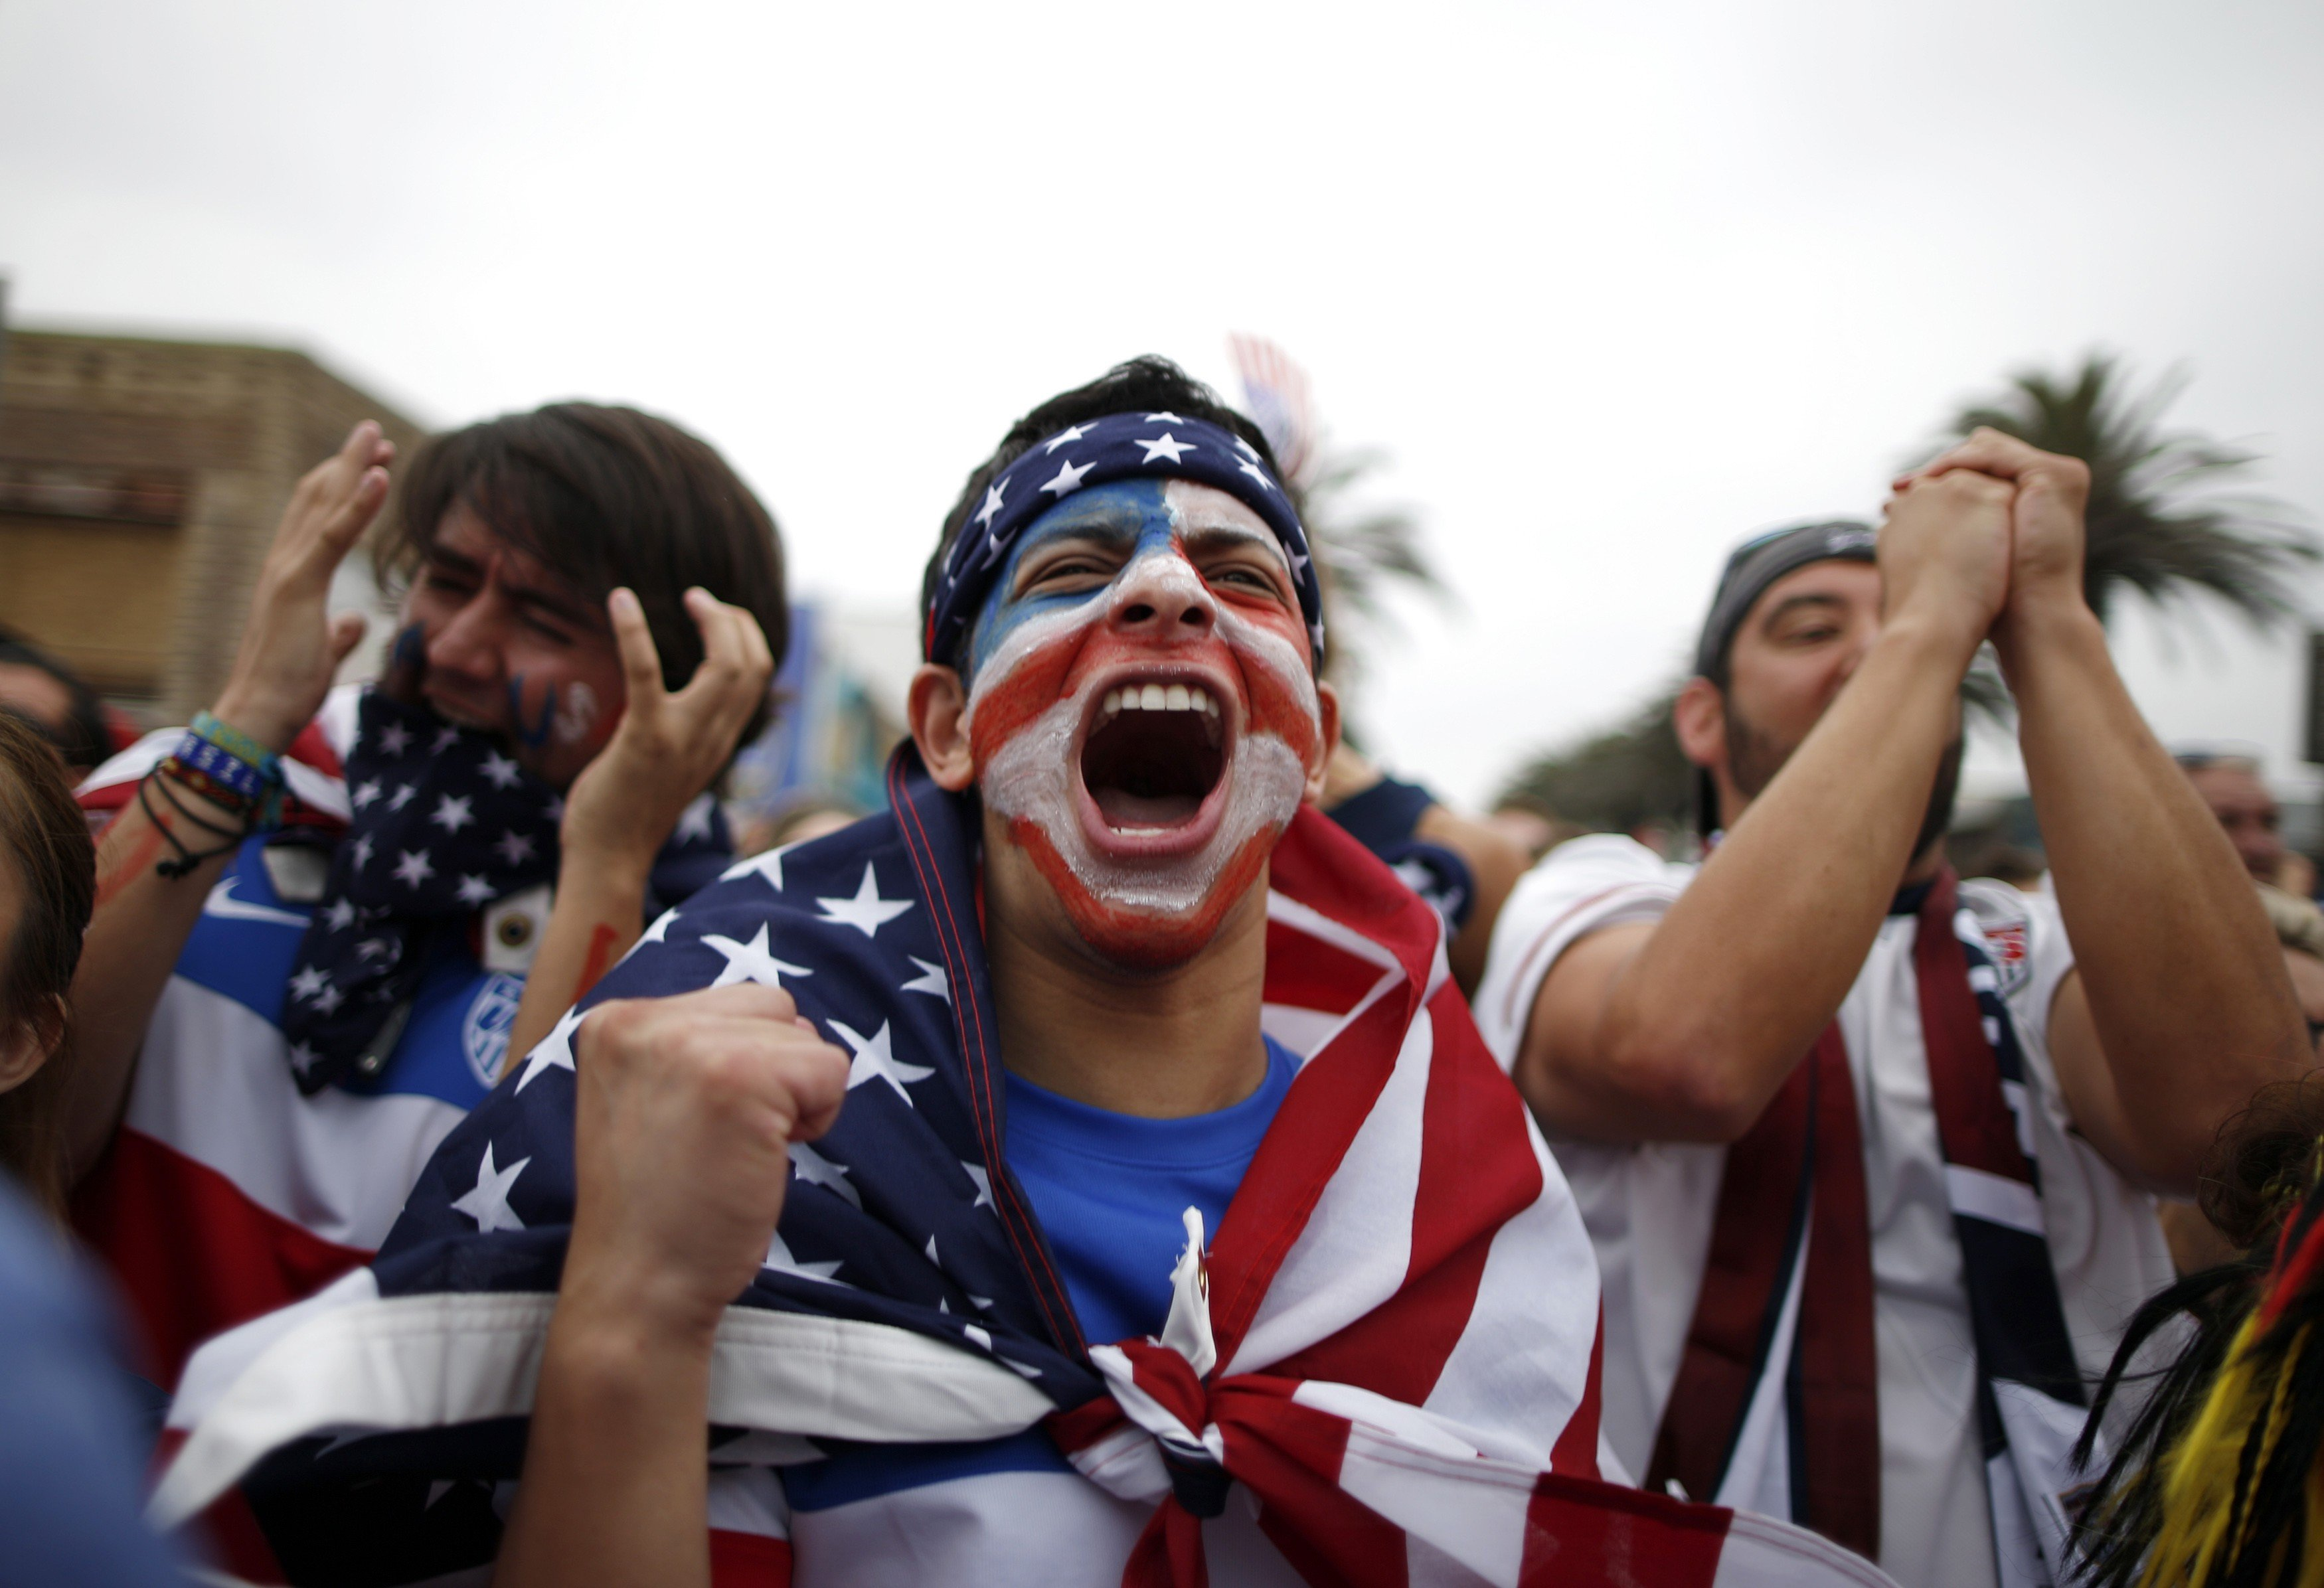 Team U.S.A. fan Gerson Sanchez, 27, during the 2014 World Cup Group G soccer match between Germany and the U.S. at a viewing party in Hermosa Beach, Calif., on June 26, 2014.